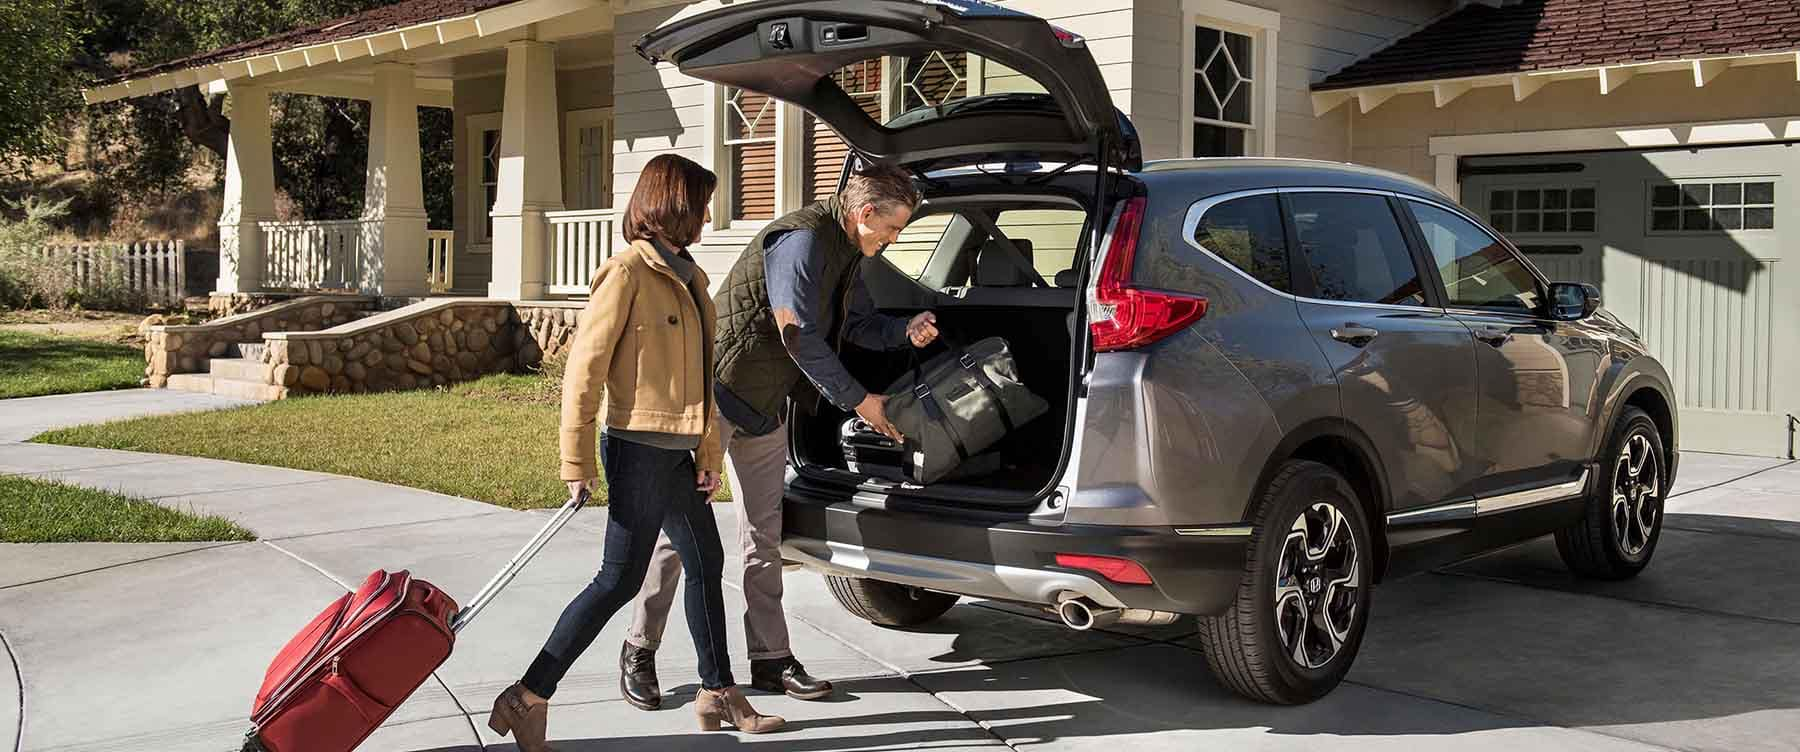 Couple loading luggage into cargo area of 2018 Honda CR-V